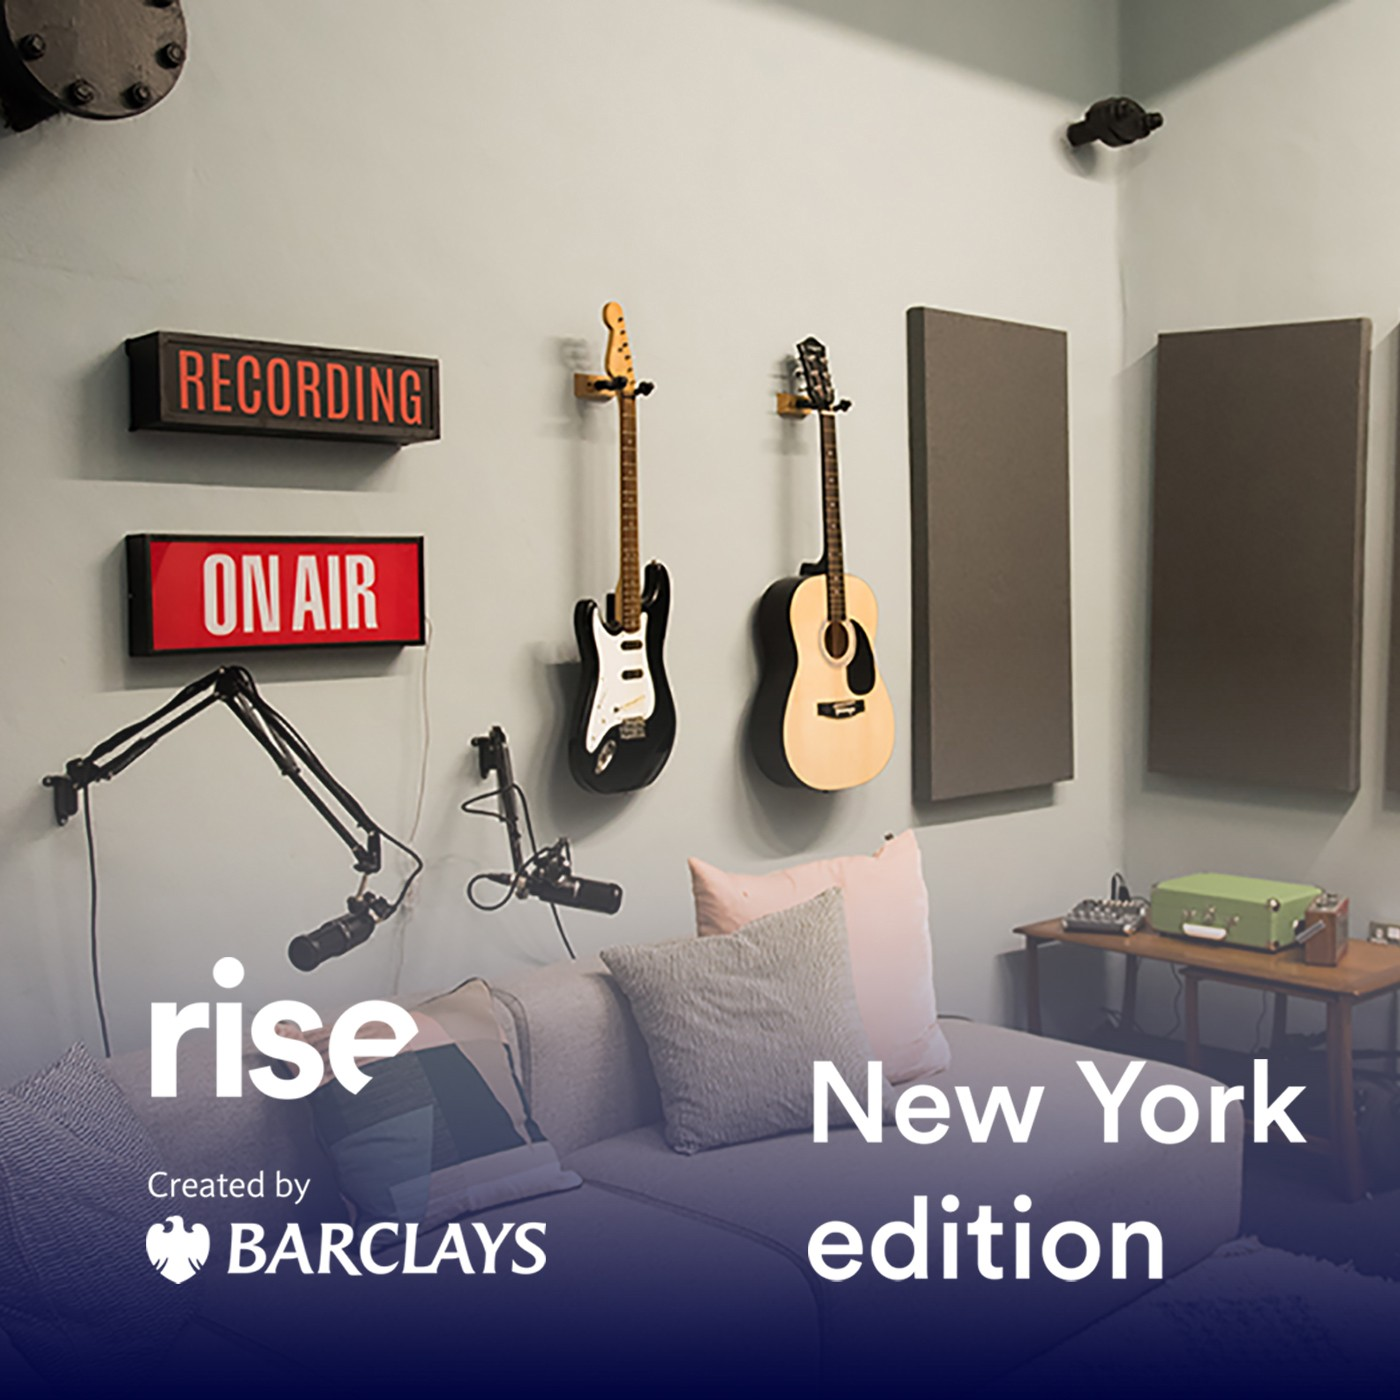 New York edition of the Rise FinTech Podcast